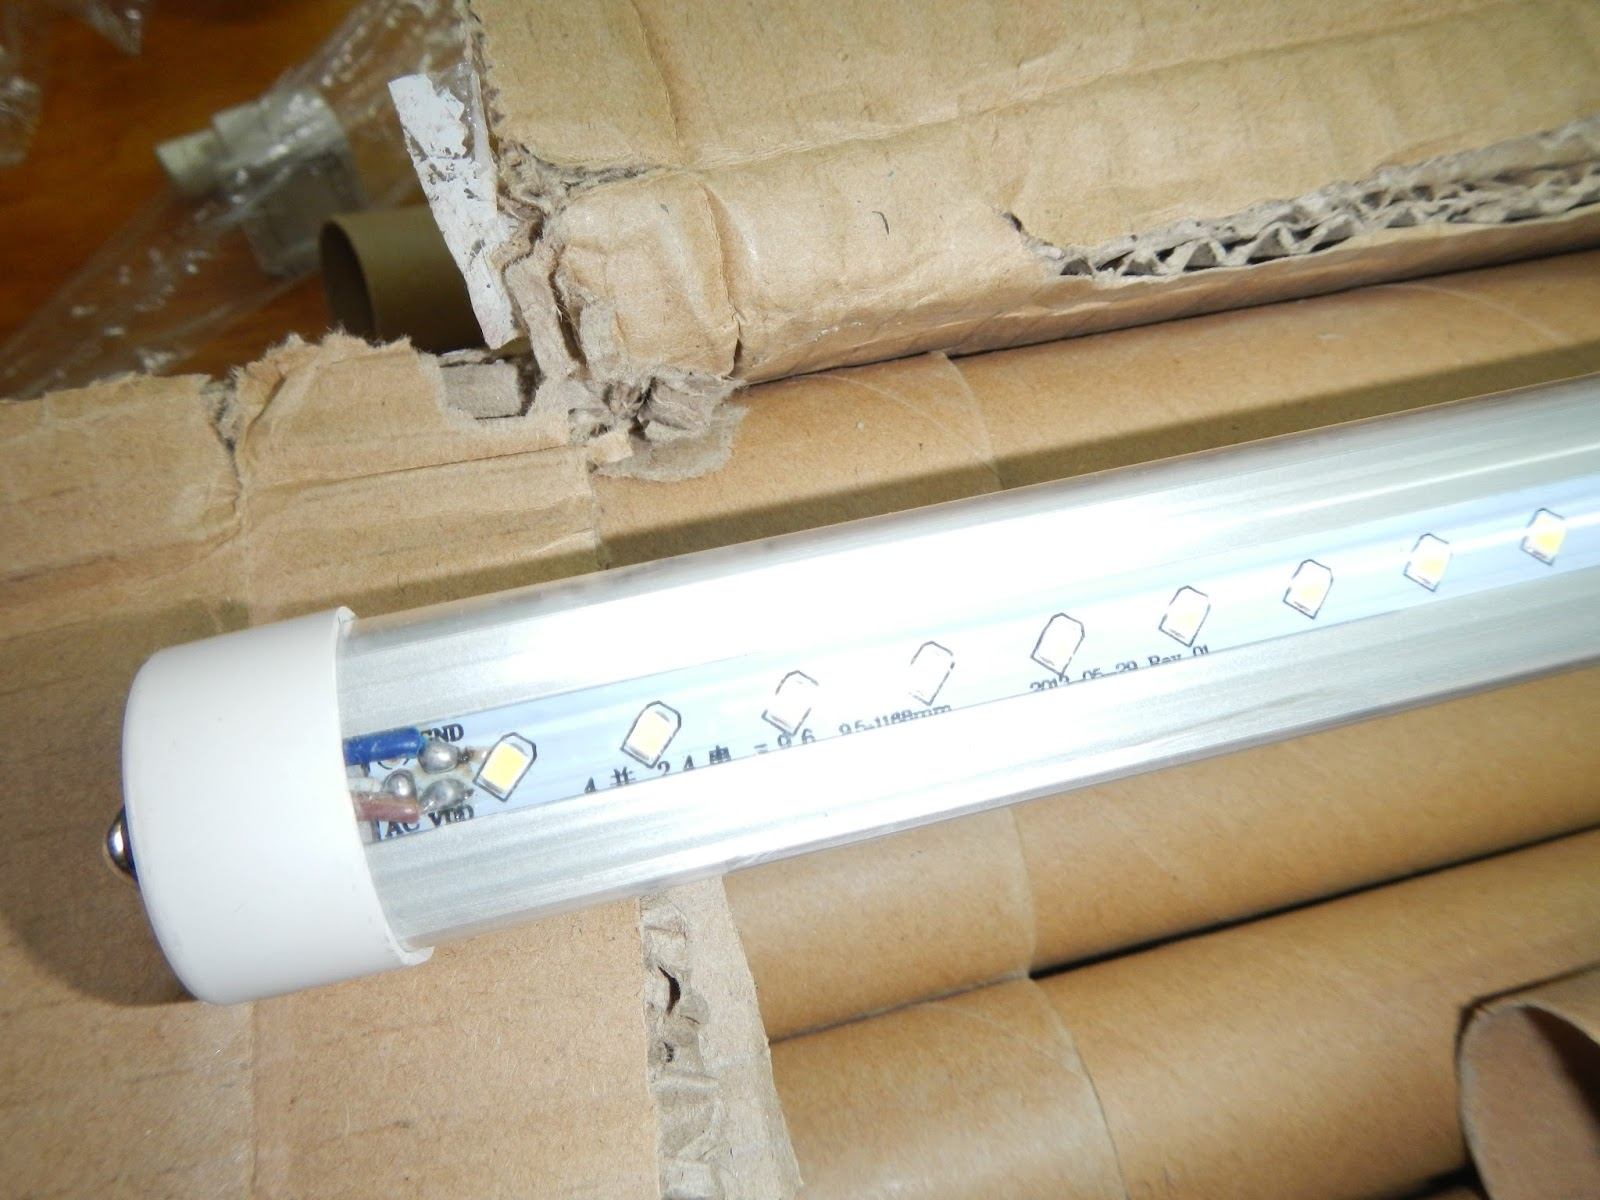 Flourescent To Led Lighting additionally Ideal Electric Berkeley in addition How to use Fluorescent LED replacement furthermore Ellipz Lighting Technology Overview additionally UxTMF8mAXVo. on replacing flourescent ballast